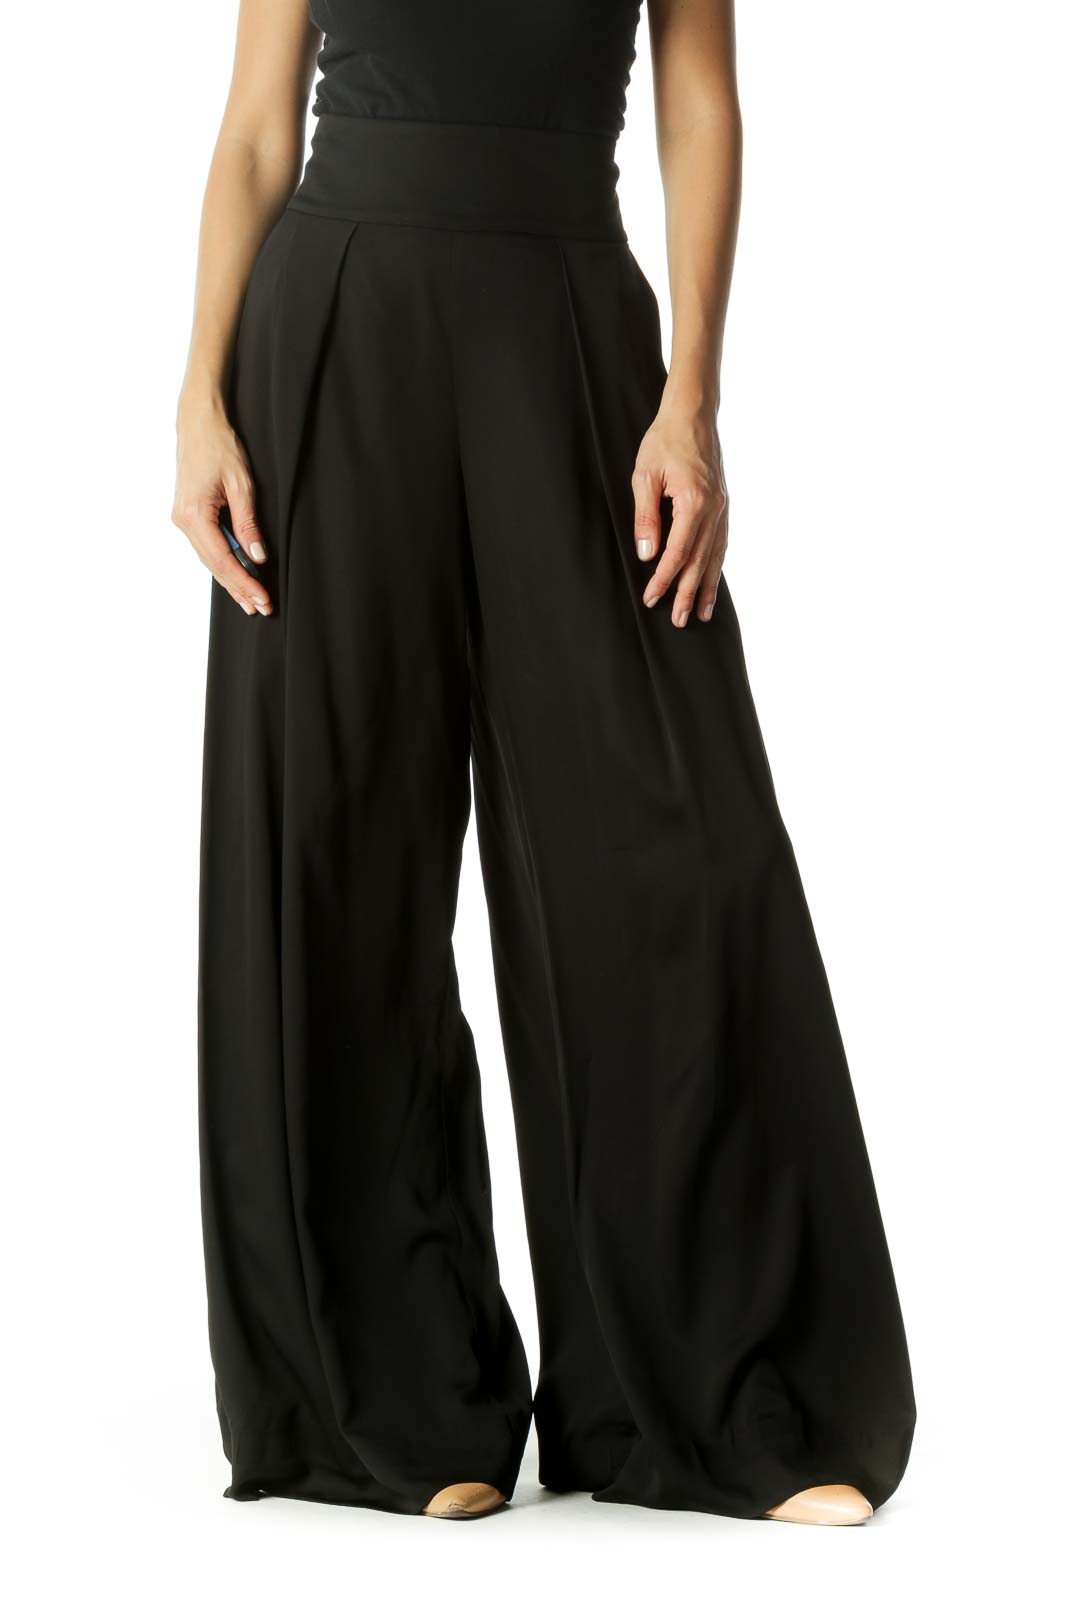 Black Cinched Waist Pleated Wide-Leg Draped Pants Front